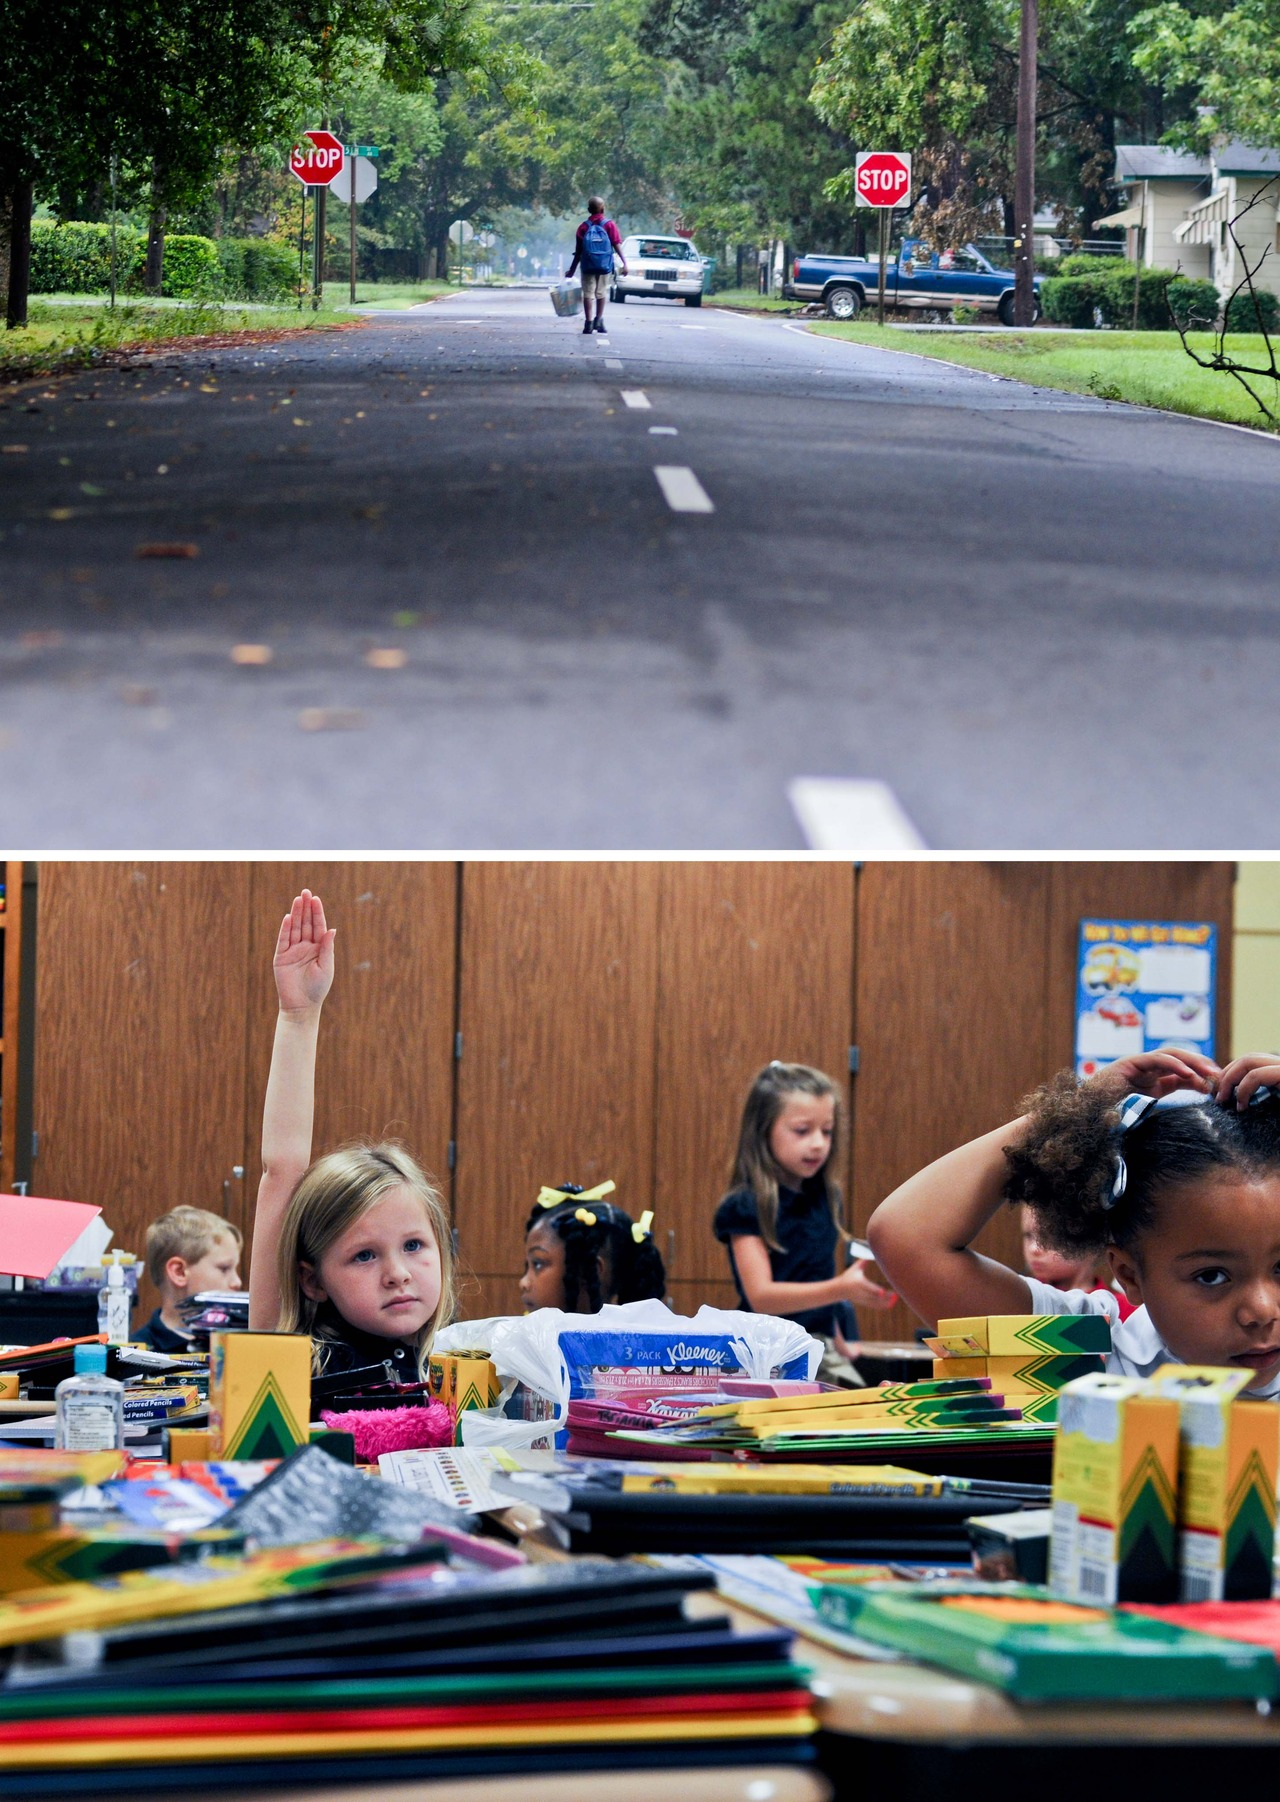 First Day of School:     Top:     Ernest Campbell walks to his first day of school at Clara Hall Elementary School carrying a backpack and a plastic bag full of school supplies.     Bottom:    Payge Hill raises her hand to volunteer to be a helper in Cassandra Douglas' first grade classroom.